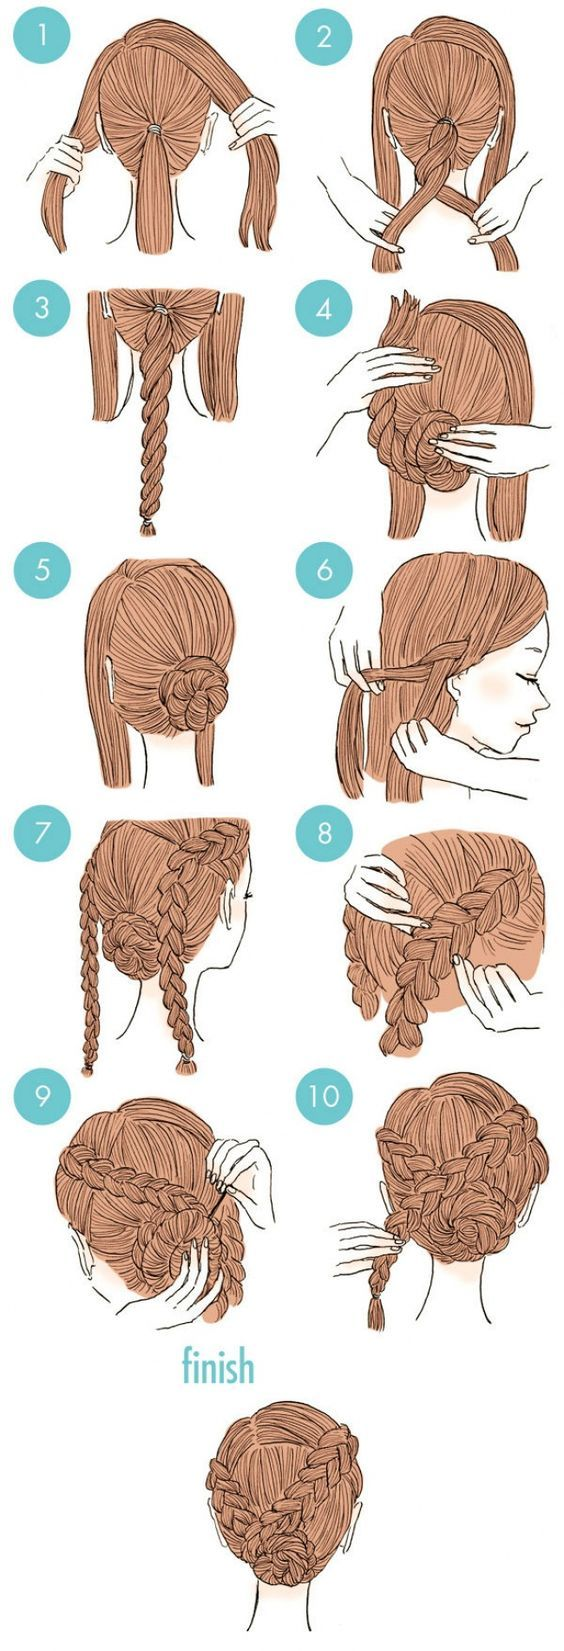 20 Fashionable Step by Step Hairstyle Tutorials                                                                                                                                                                                 More